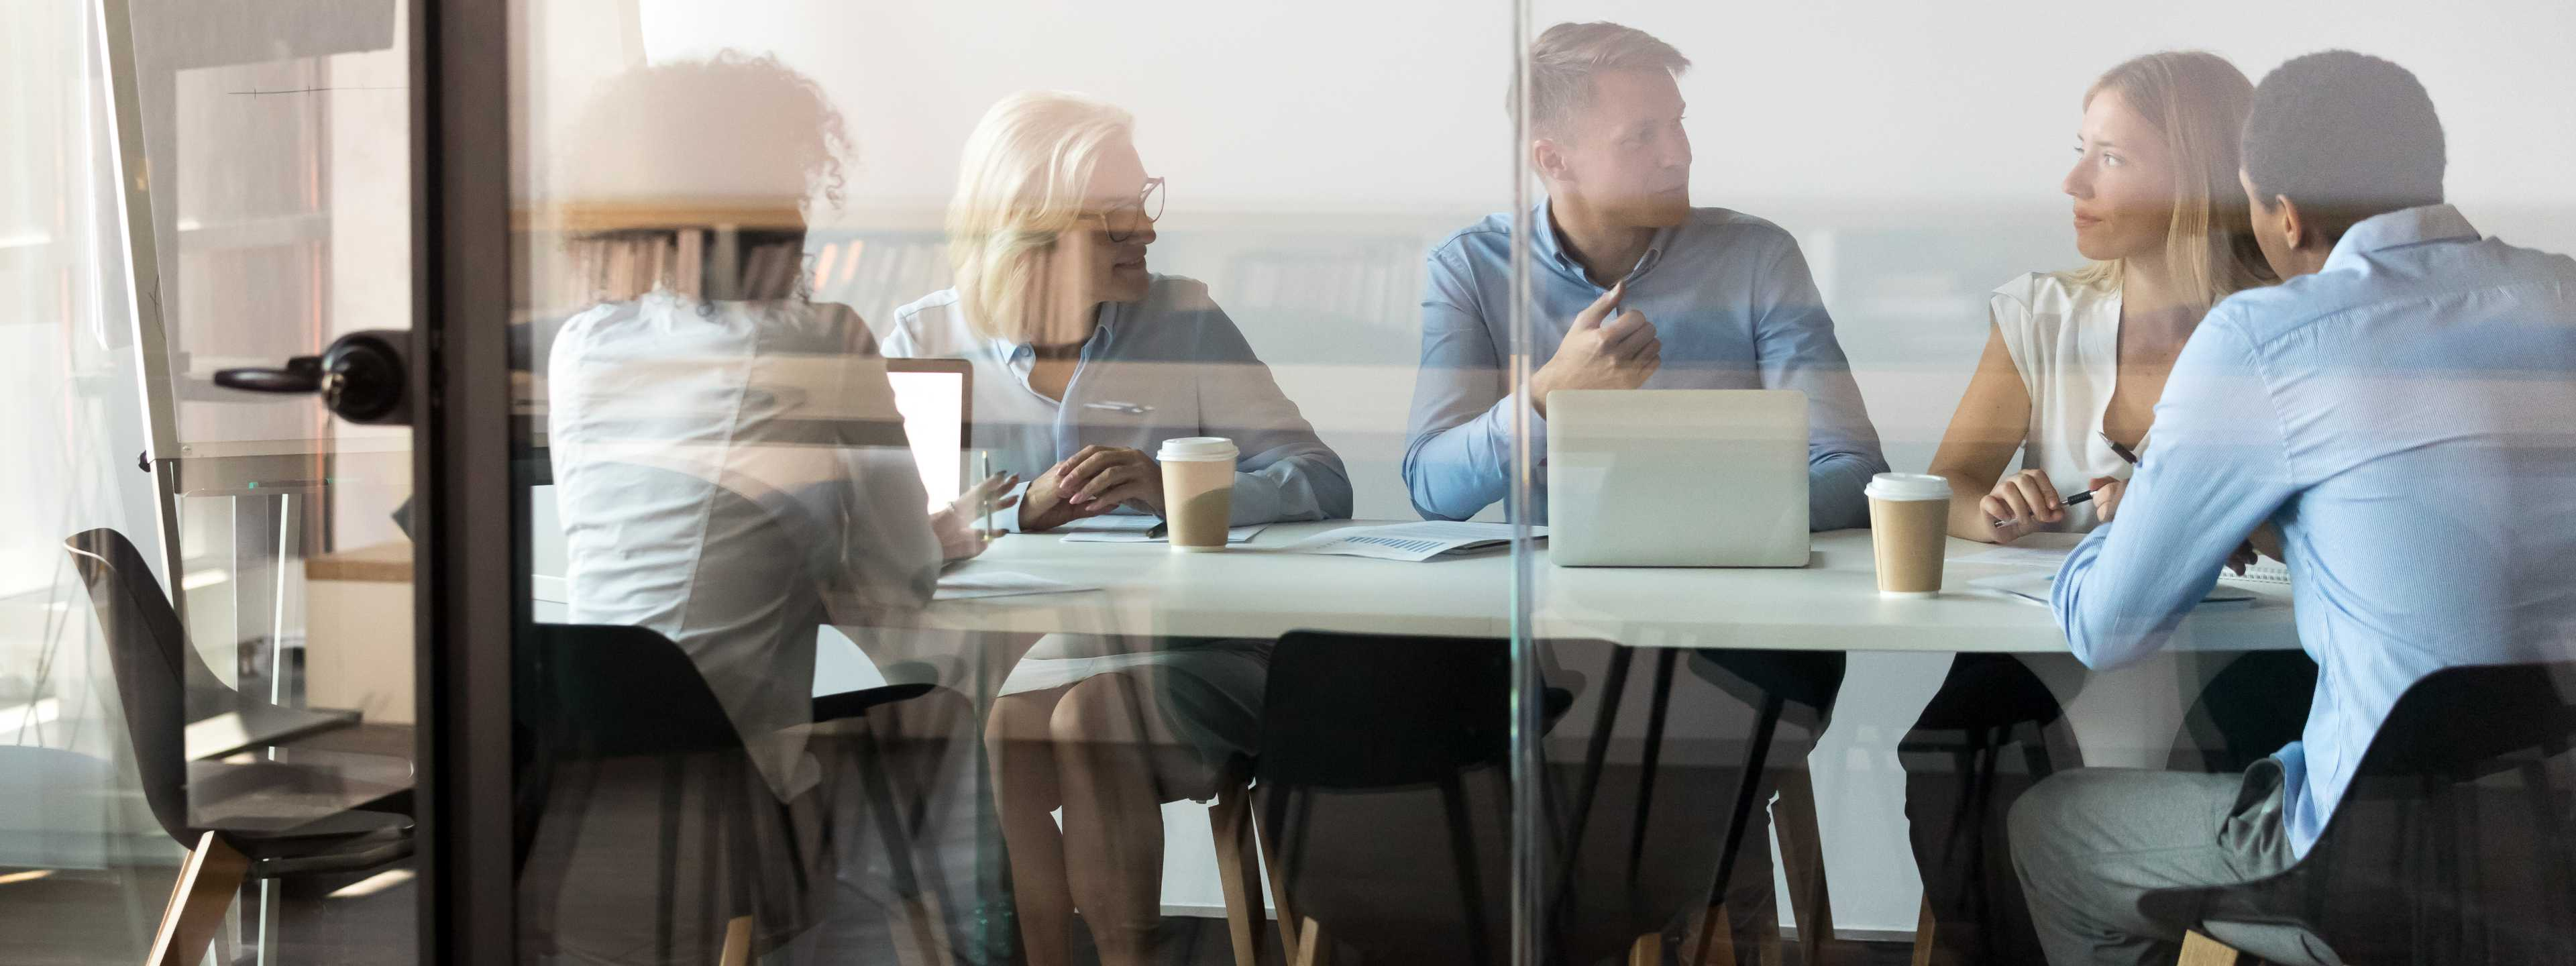 Group meets at conference table